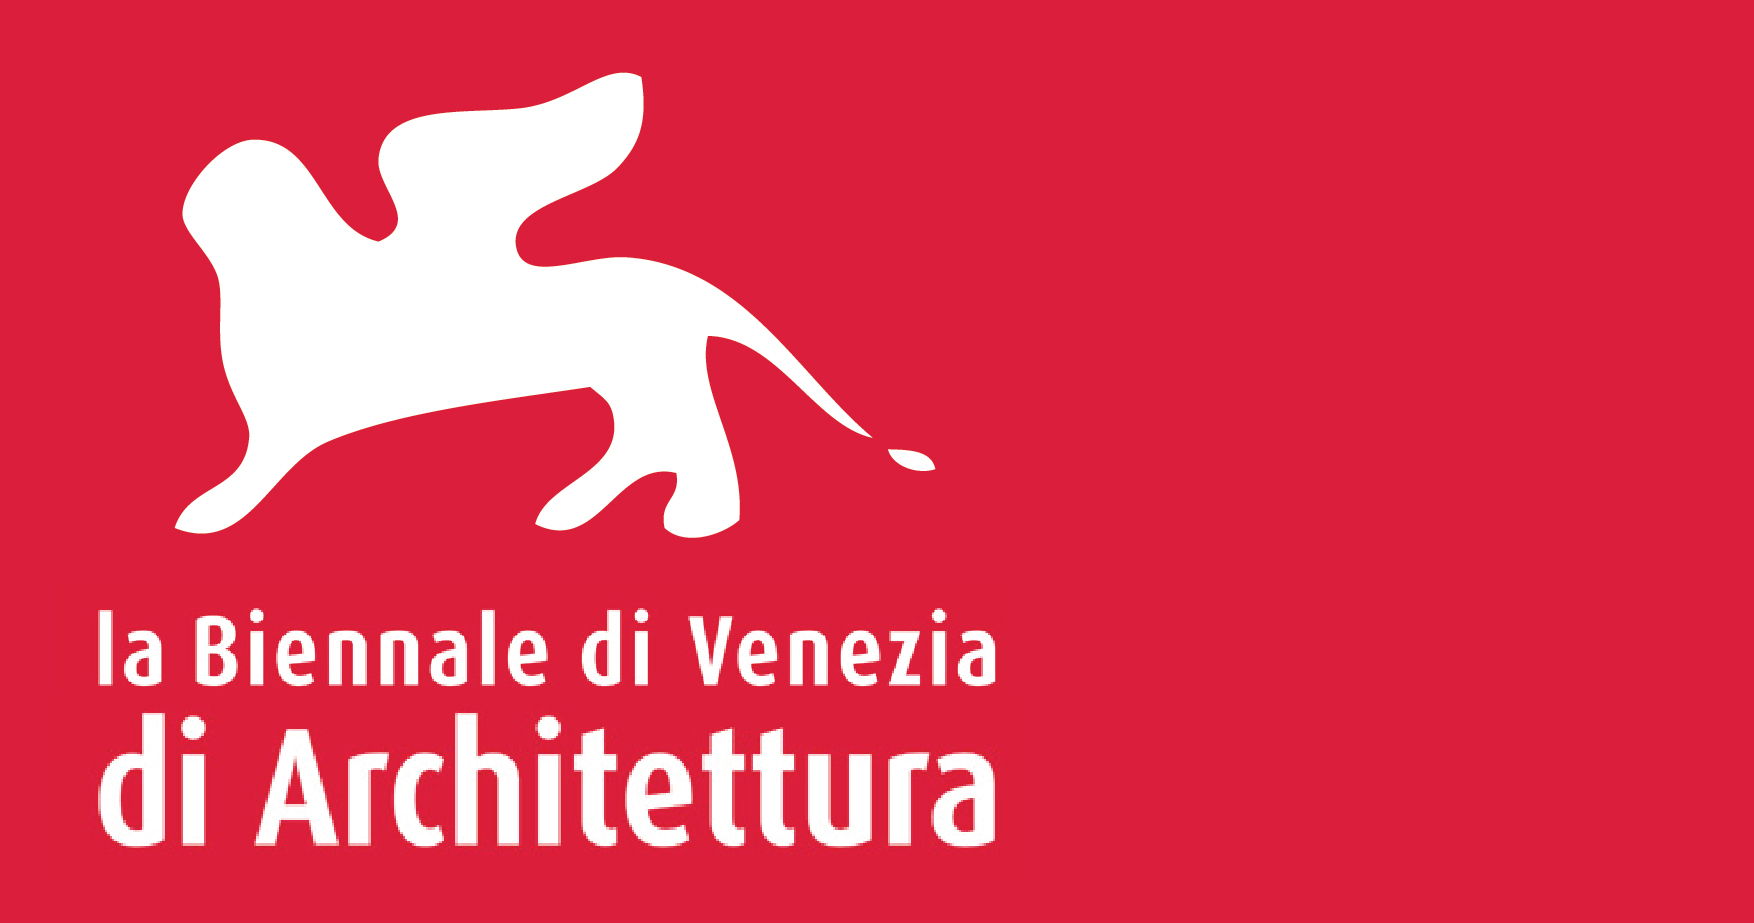 Telefonica R&D presents its Art and Technology program at la Biennale di Venezia